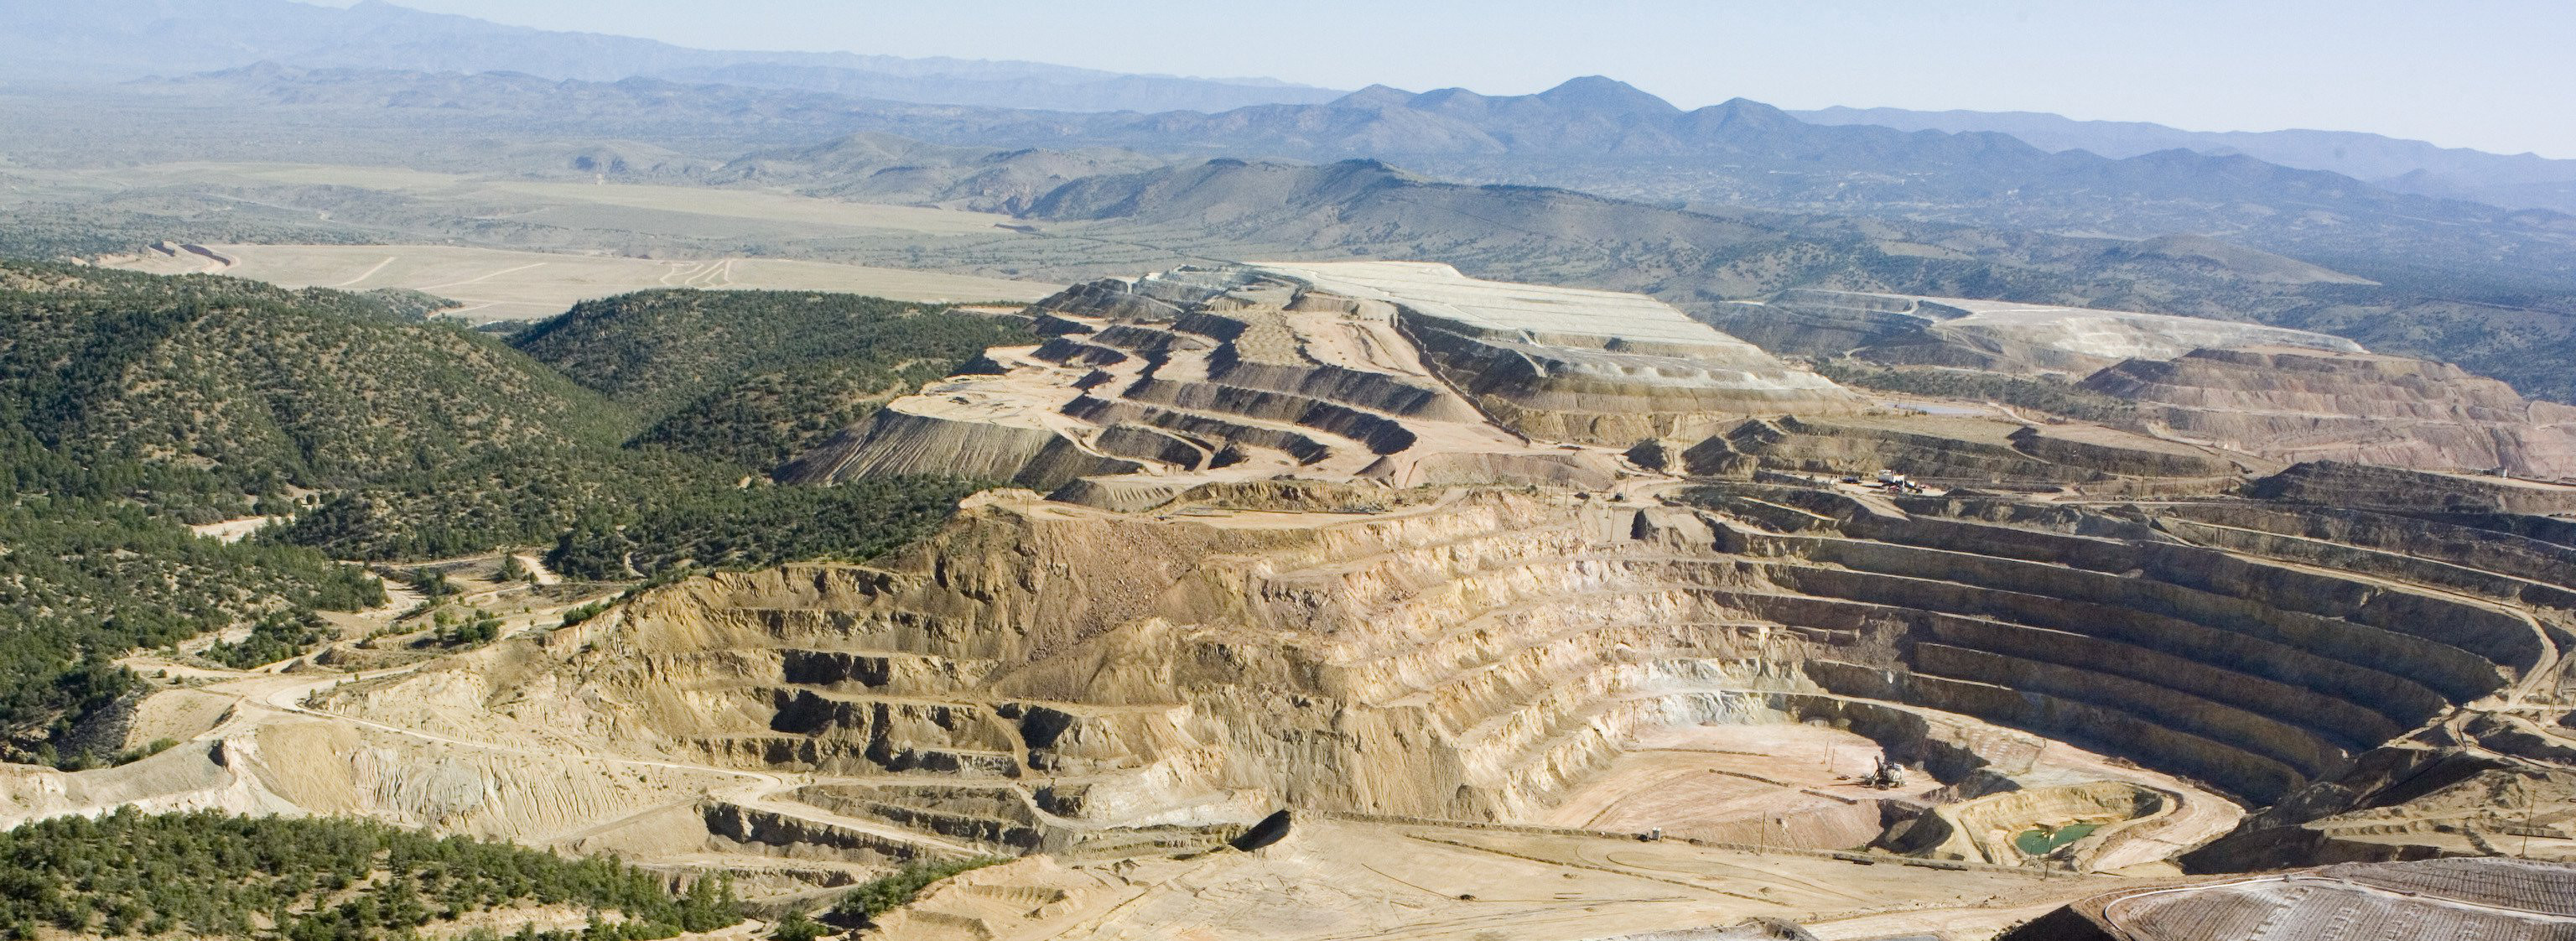 Cobre Mine, New Mexico